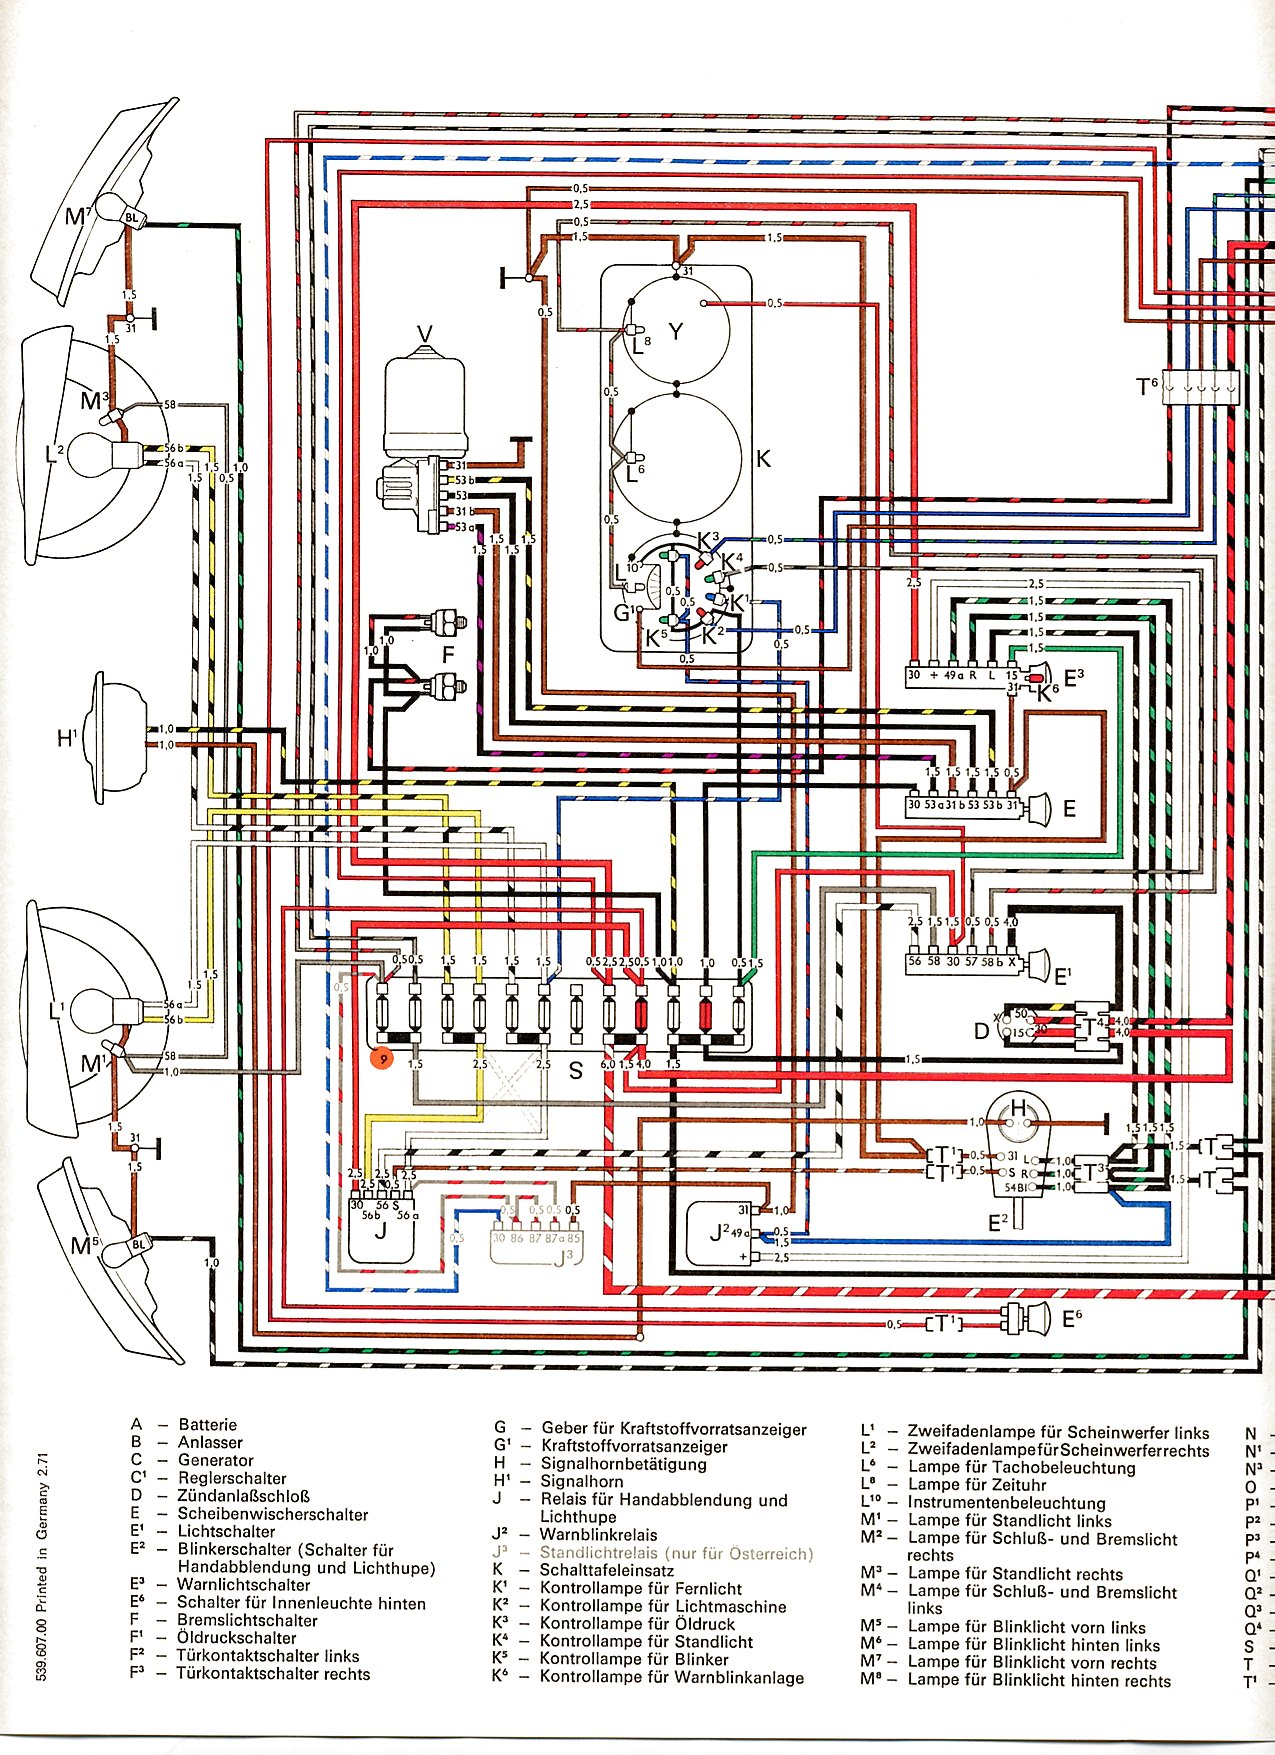 Transporter From August on Vw Beetle Wiring Diagram 1962